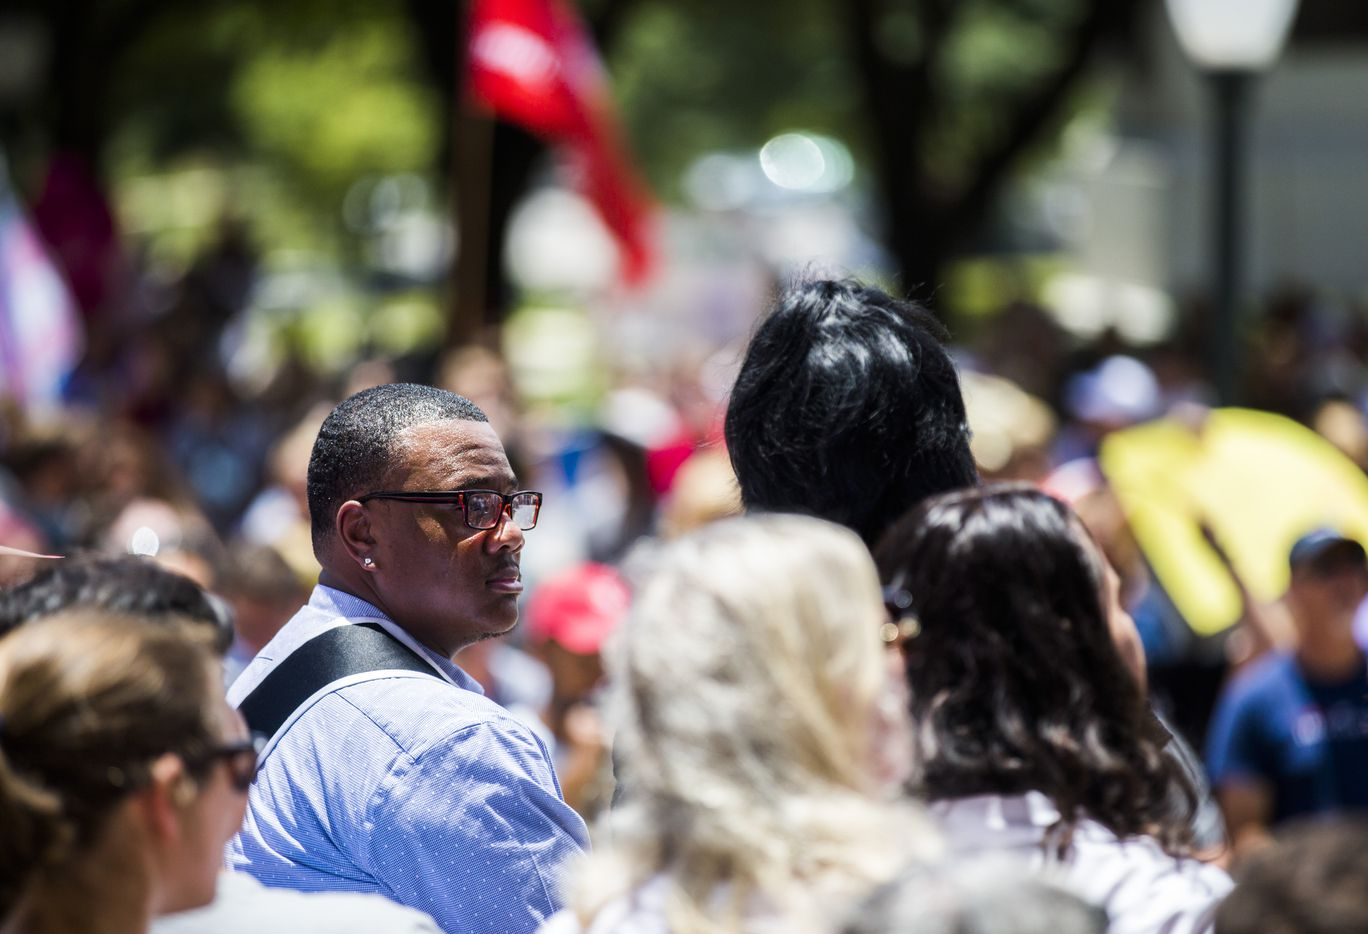 Trenton Johnson, Mr. Black Trans International, listens to speakers during a One Texas Resistance rally on the steps of the capitol on the first day of a legislative special session on Tuesday, July 18, 2017 at the Texas state capitol in Austin, Texas.